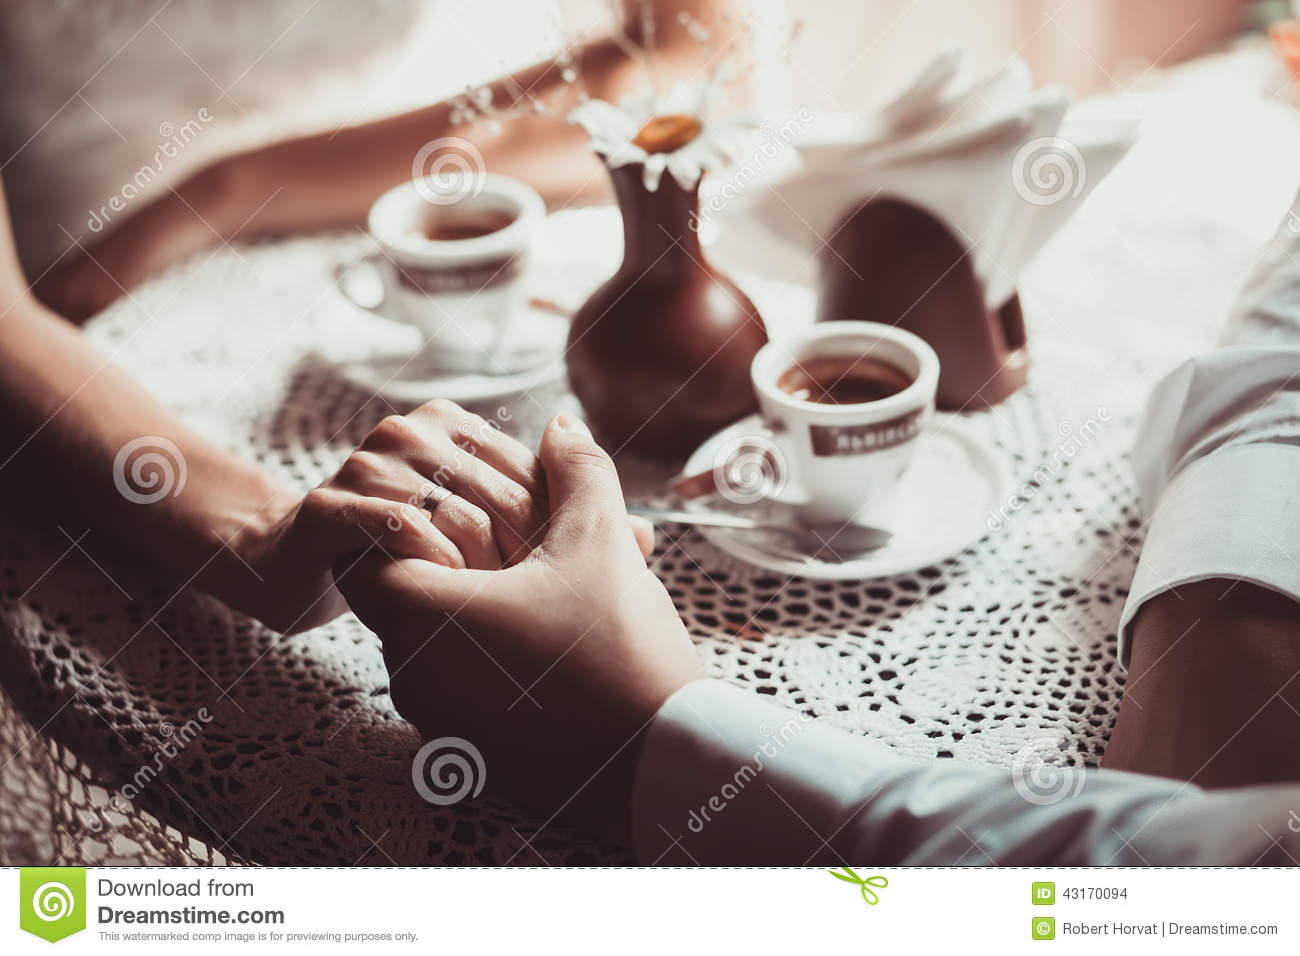 couple in love drink coffee in cafe  holding each other s hand stock photo image 43170094 praying hands clip art free download praying hands clip art free download